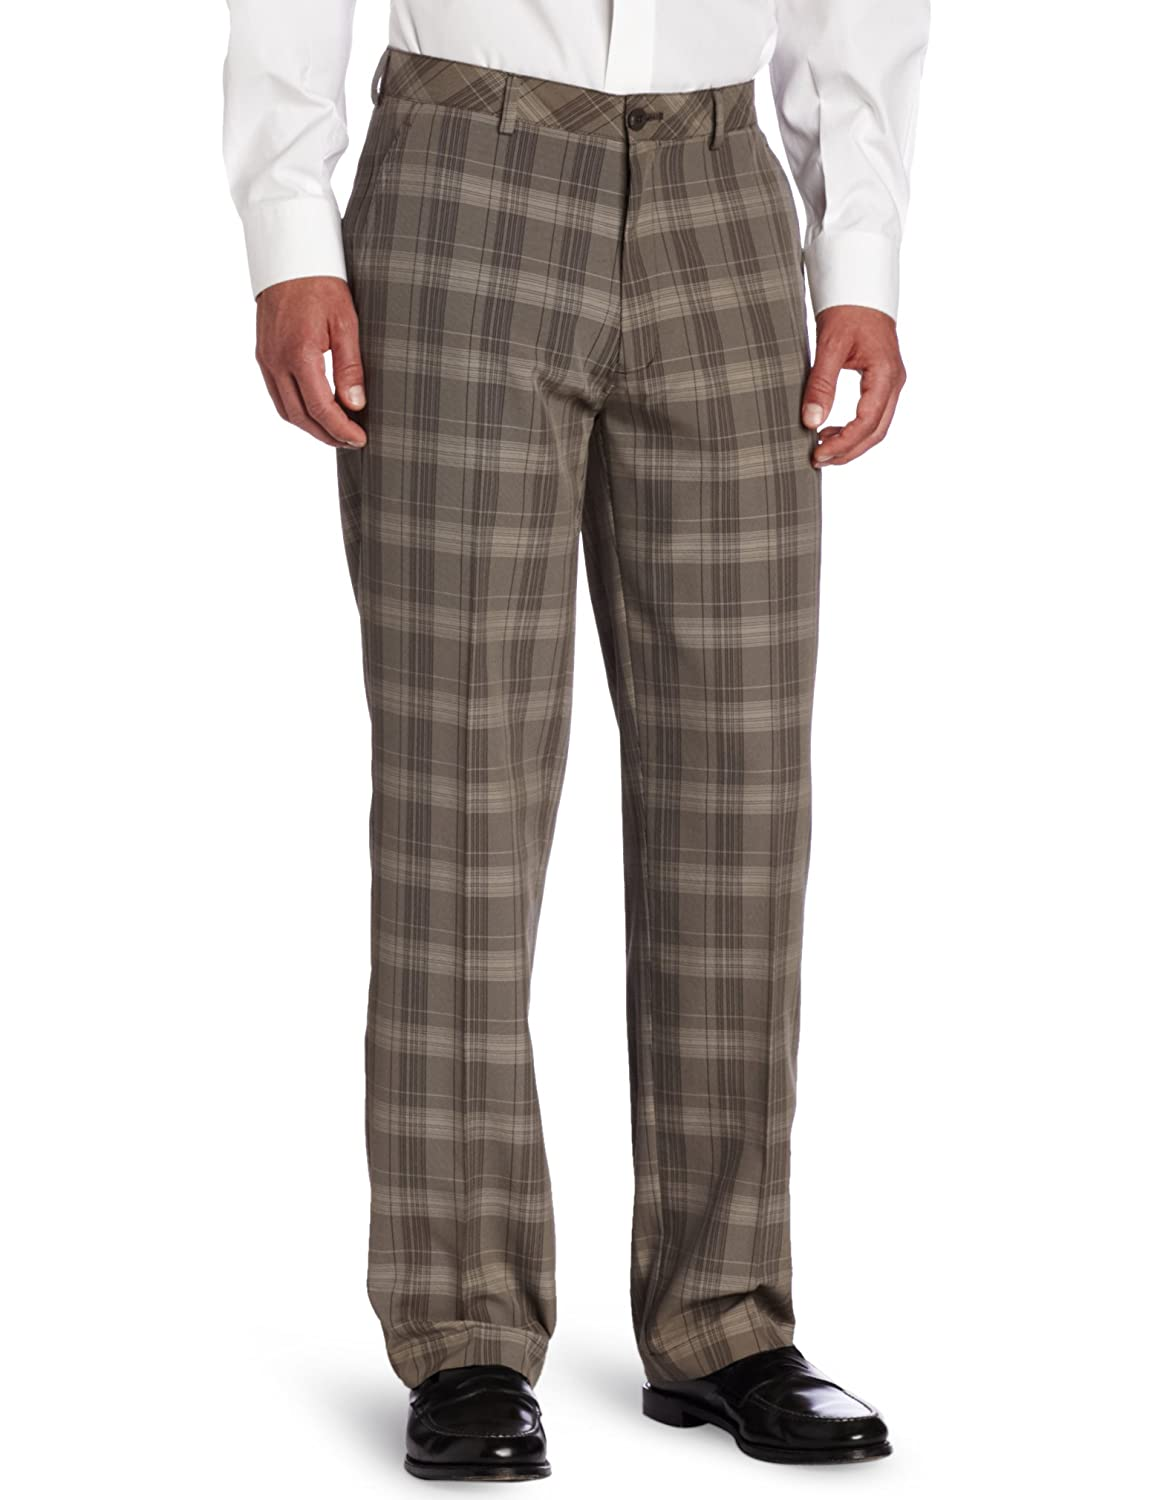 Victorian Men's Pants – Victorian Steampunk Men's Clothing Haggar Glen Plaid Straight Fit Flat Front Pant $49.19 AT vintagedancer.com